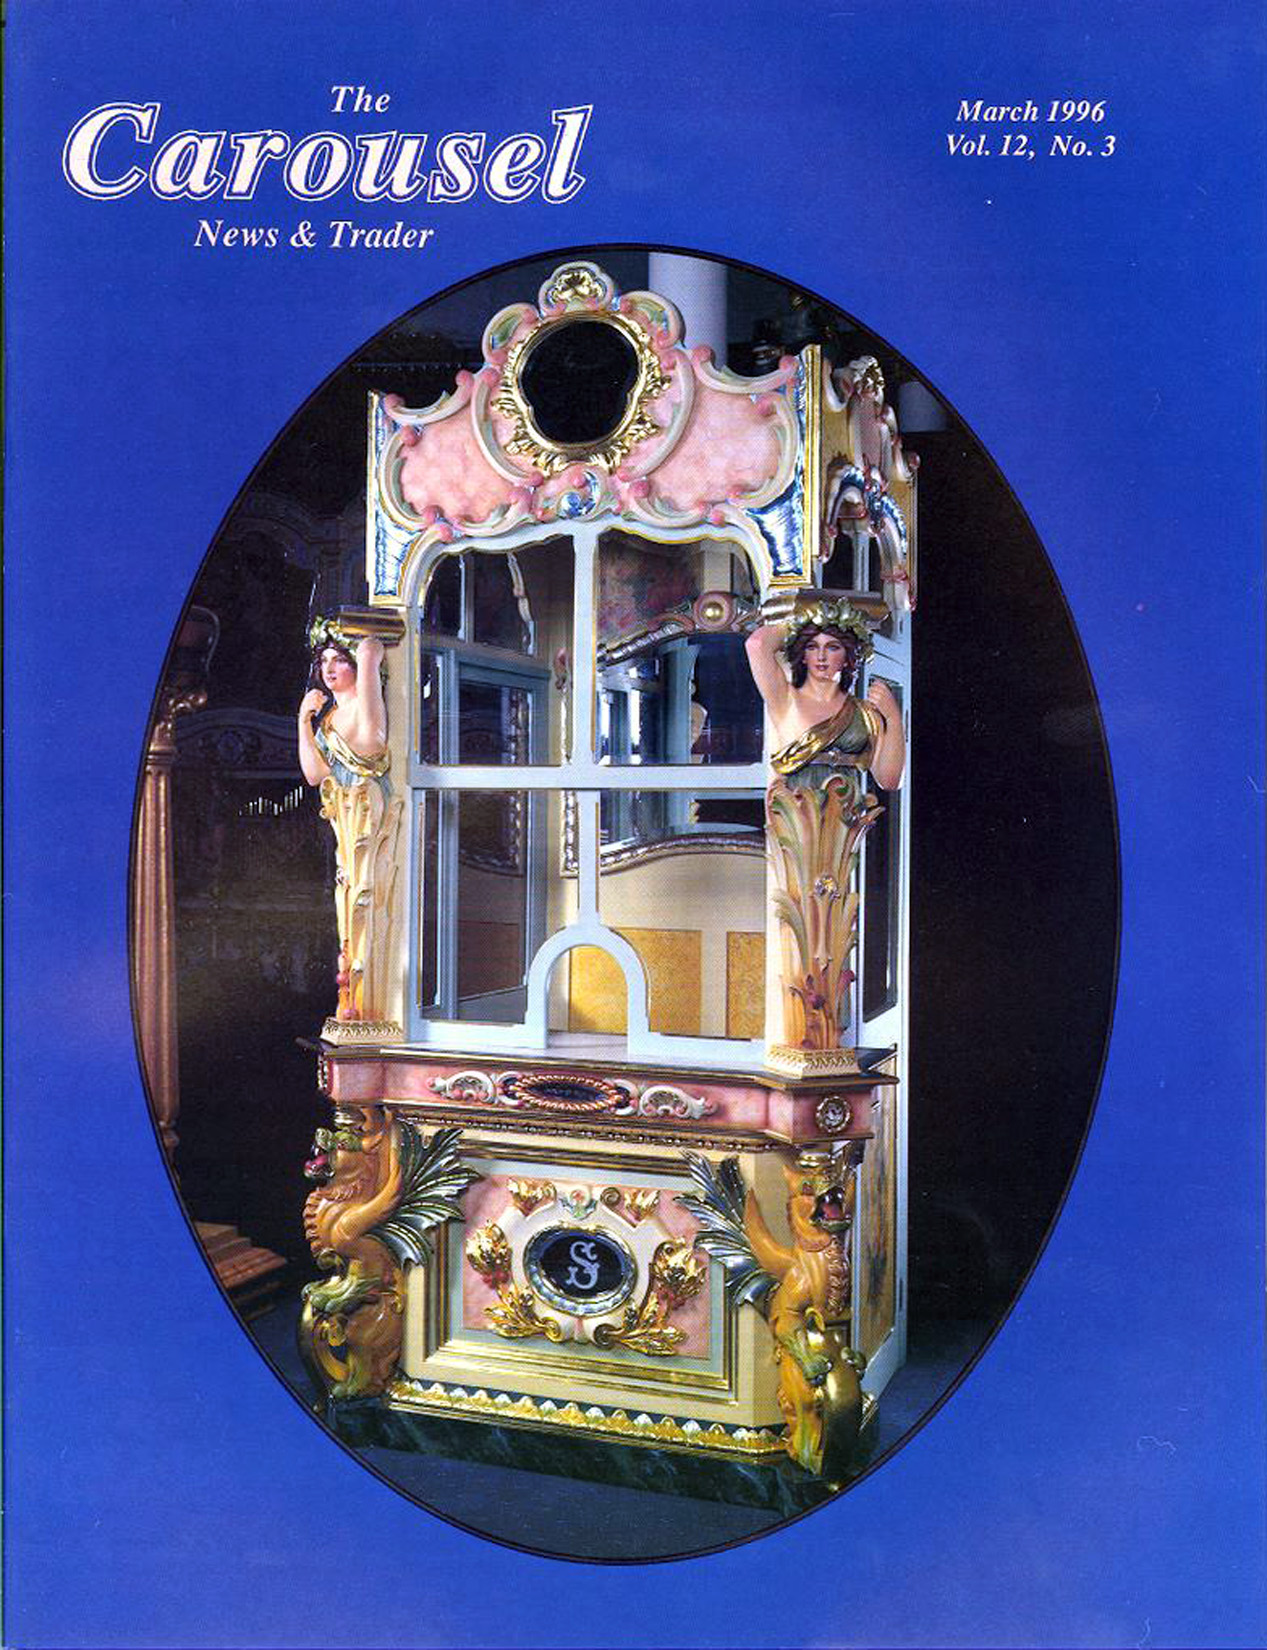 cnt_03_1996-Eden-Palais-Salon-carousel-ticket-booth